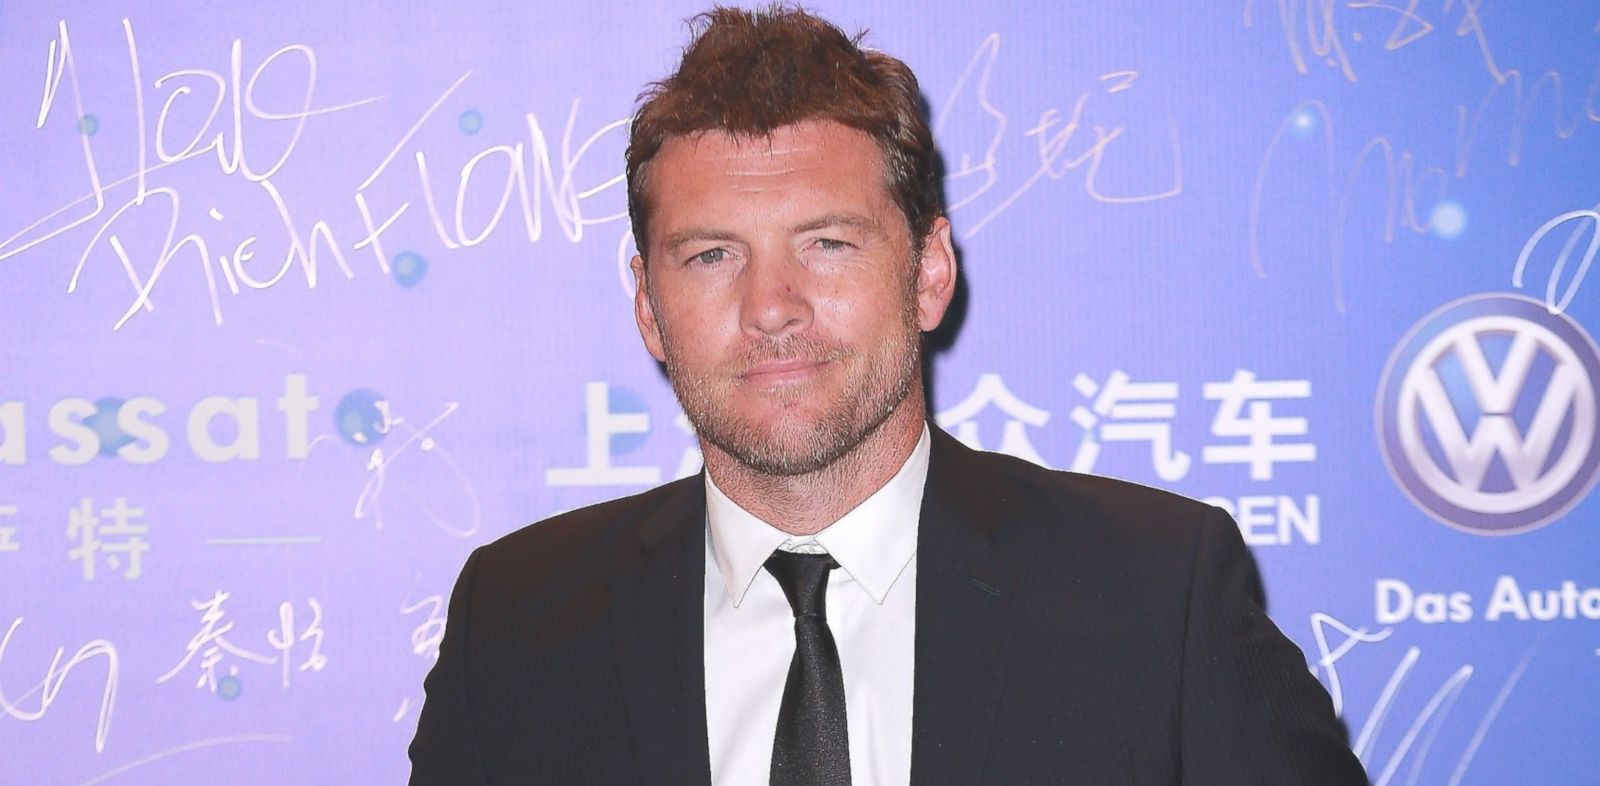 PHOTO: Sam Worthington is pictured on Oct. 6, 2013 in Macau.